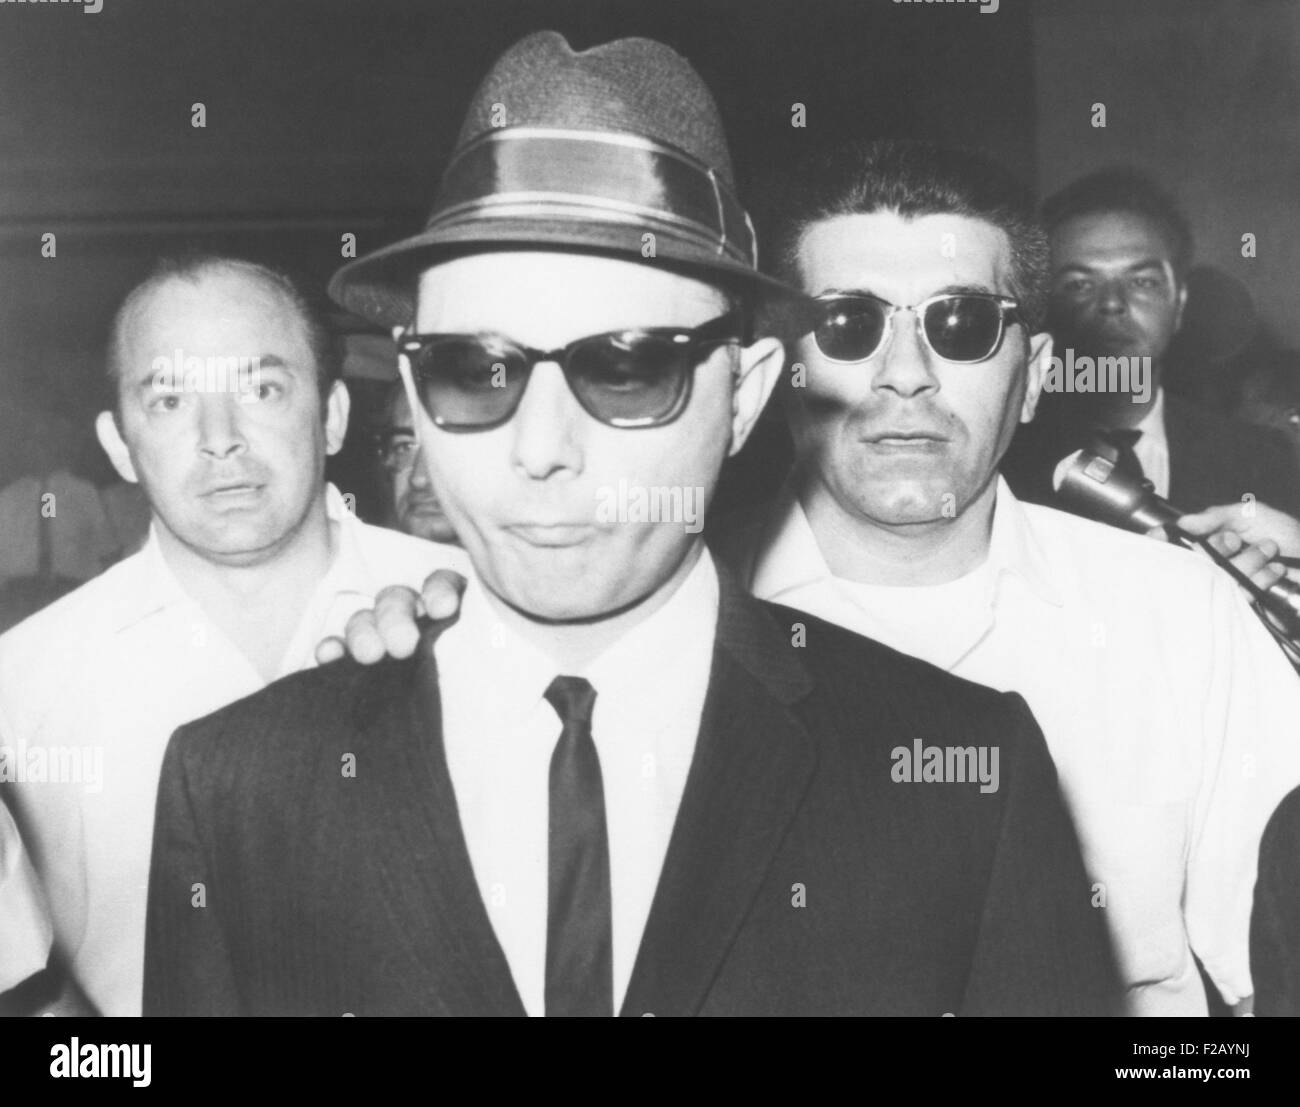 Brooklyn mobster Larry Gallo, arrives at Brooklyn federal court on August 22, 1963. He awaited sentencing for obtaining - Stock Image